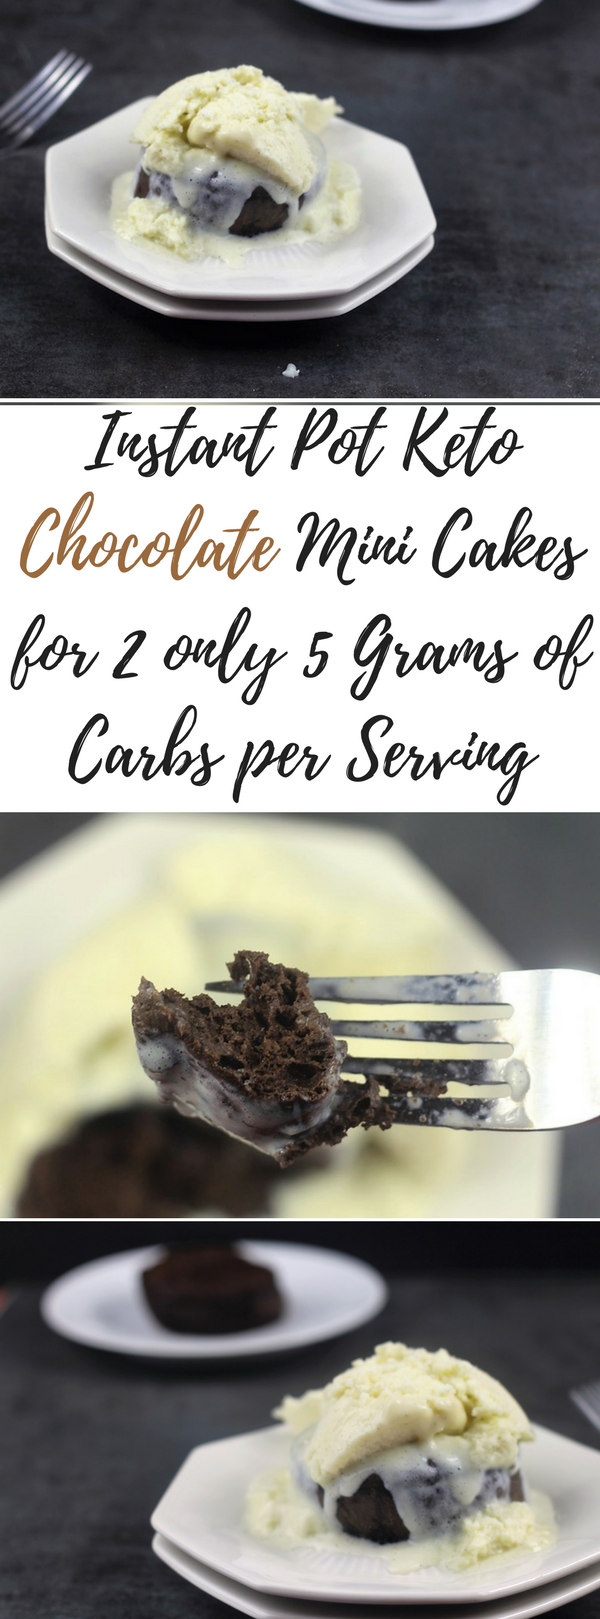 Instant Pot Keto Chocolate Mini Cakes